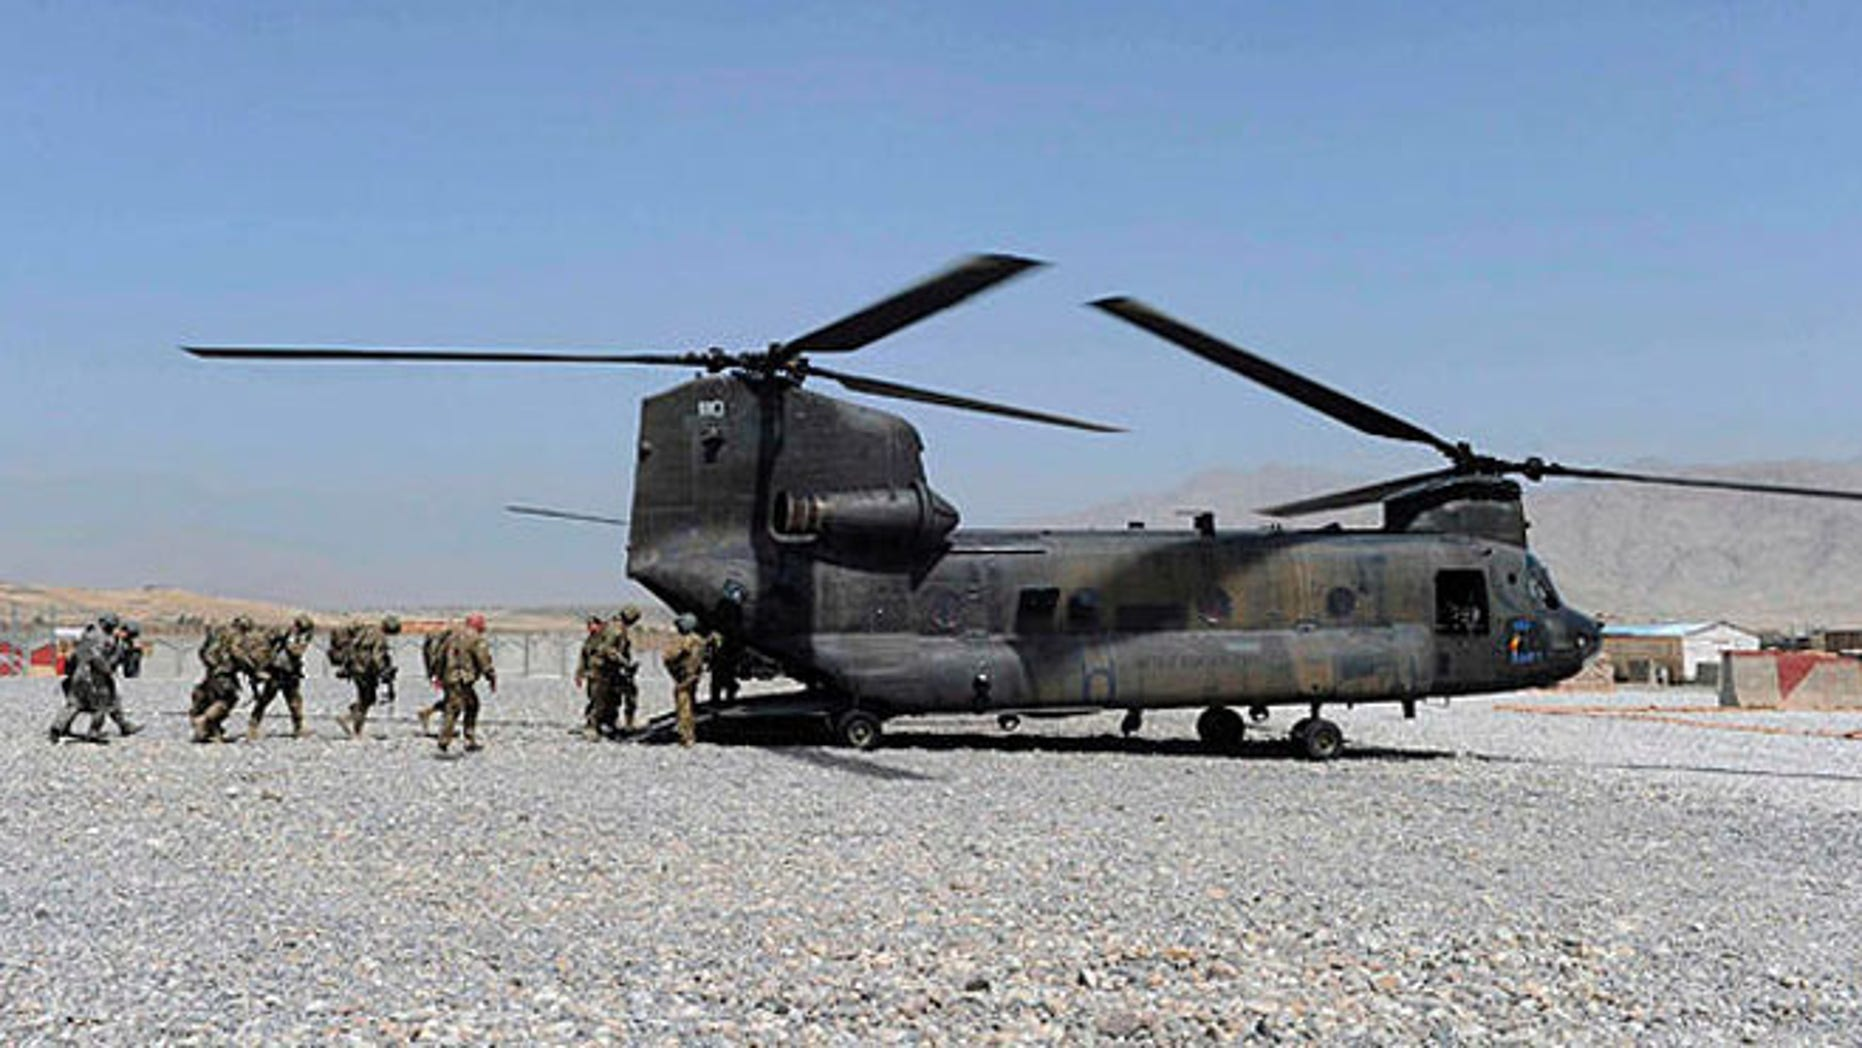 House panel probing chopper crash that killed SEAL Team 6 members